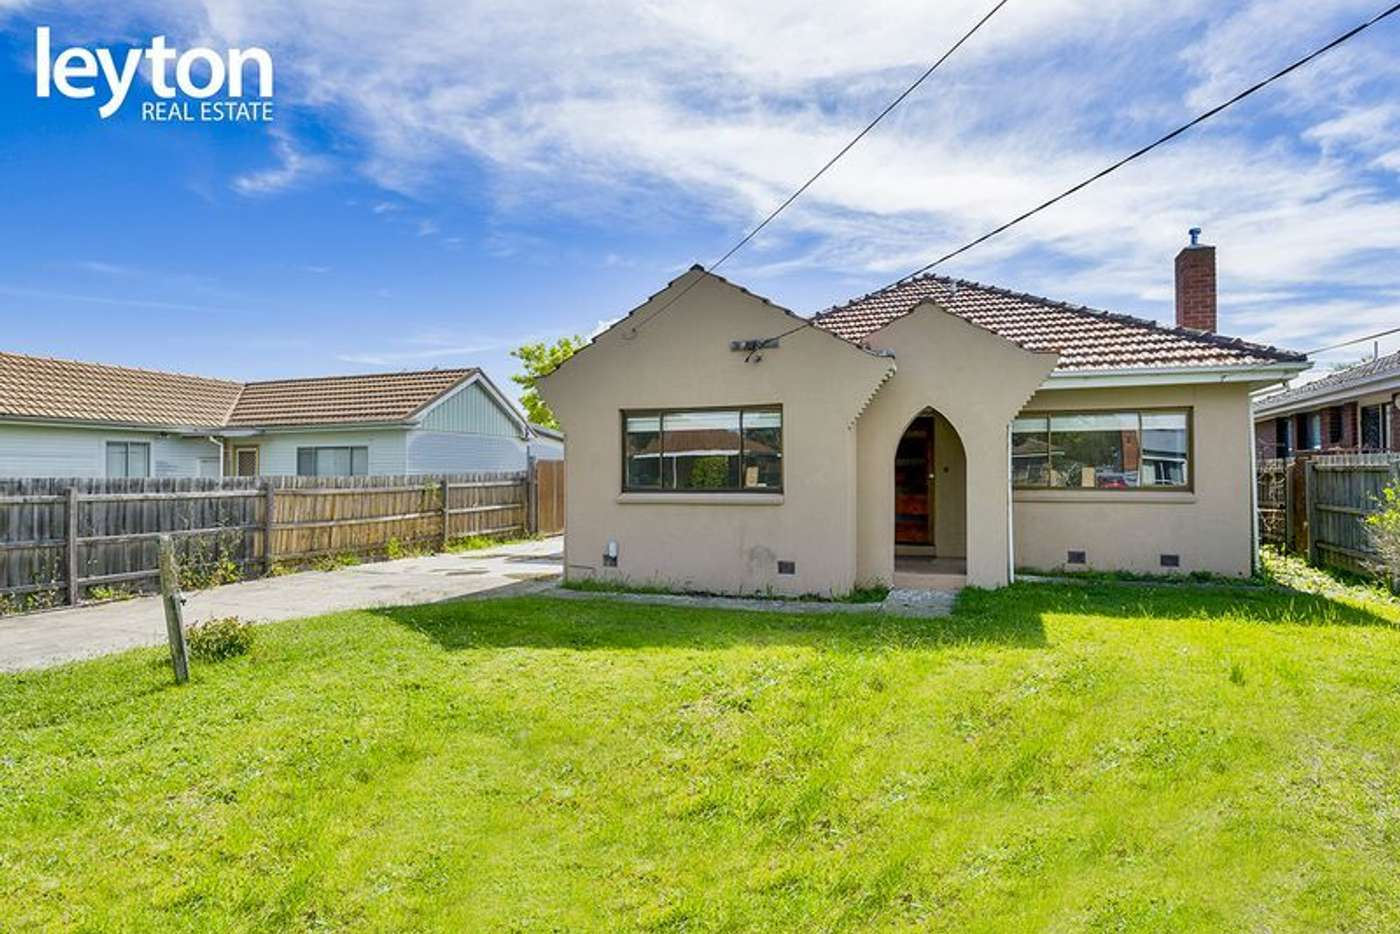 Main view of Homely house listing, 44 Grace Street, Springvale VIC 3171